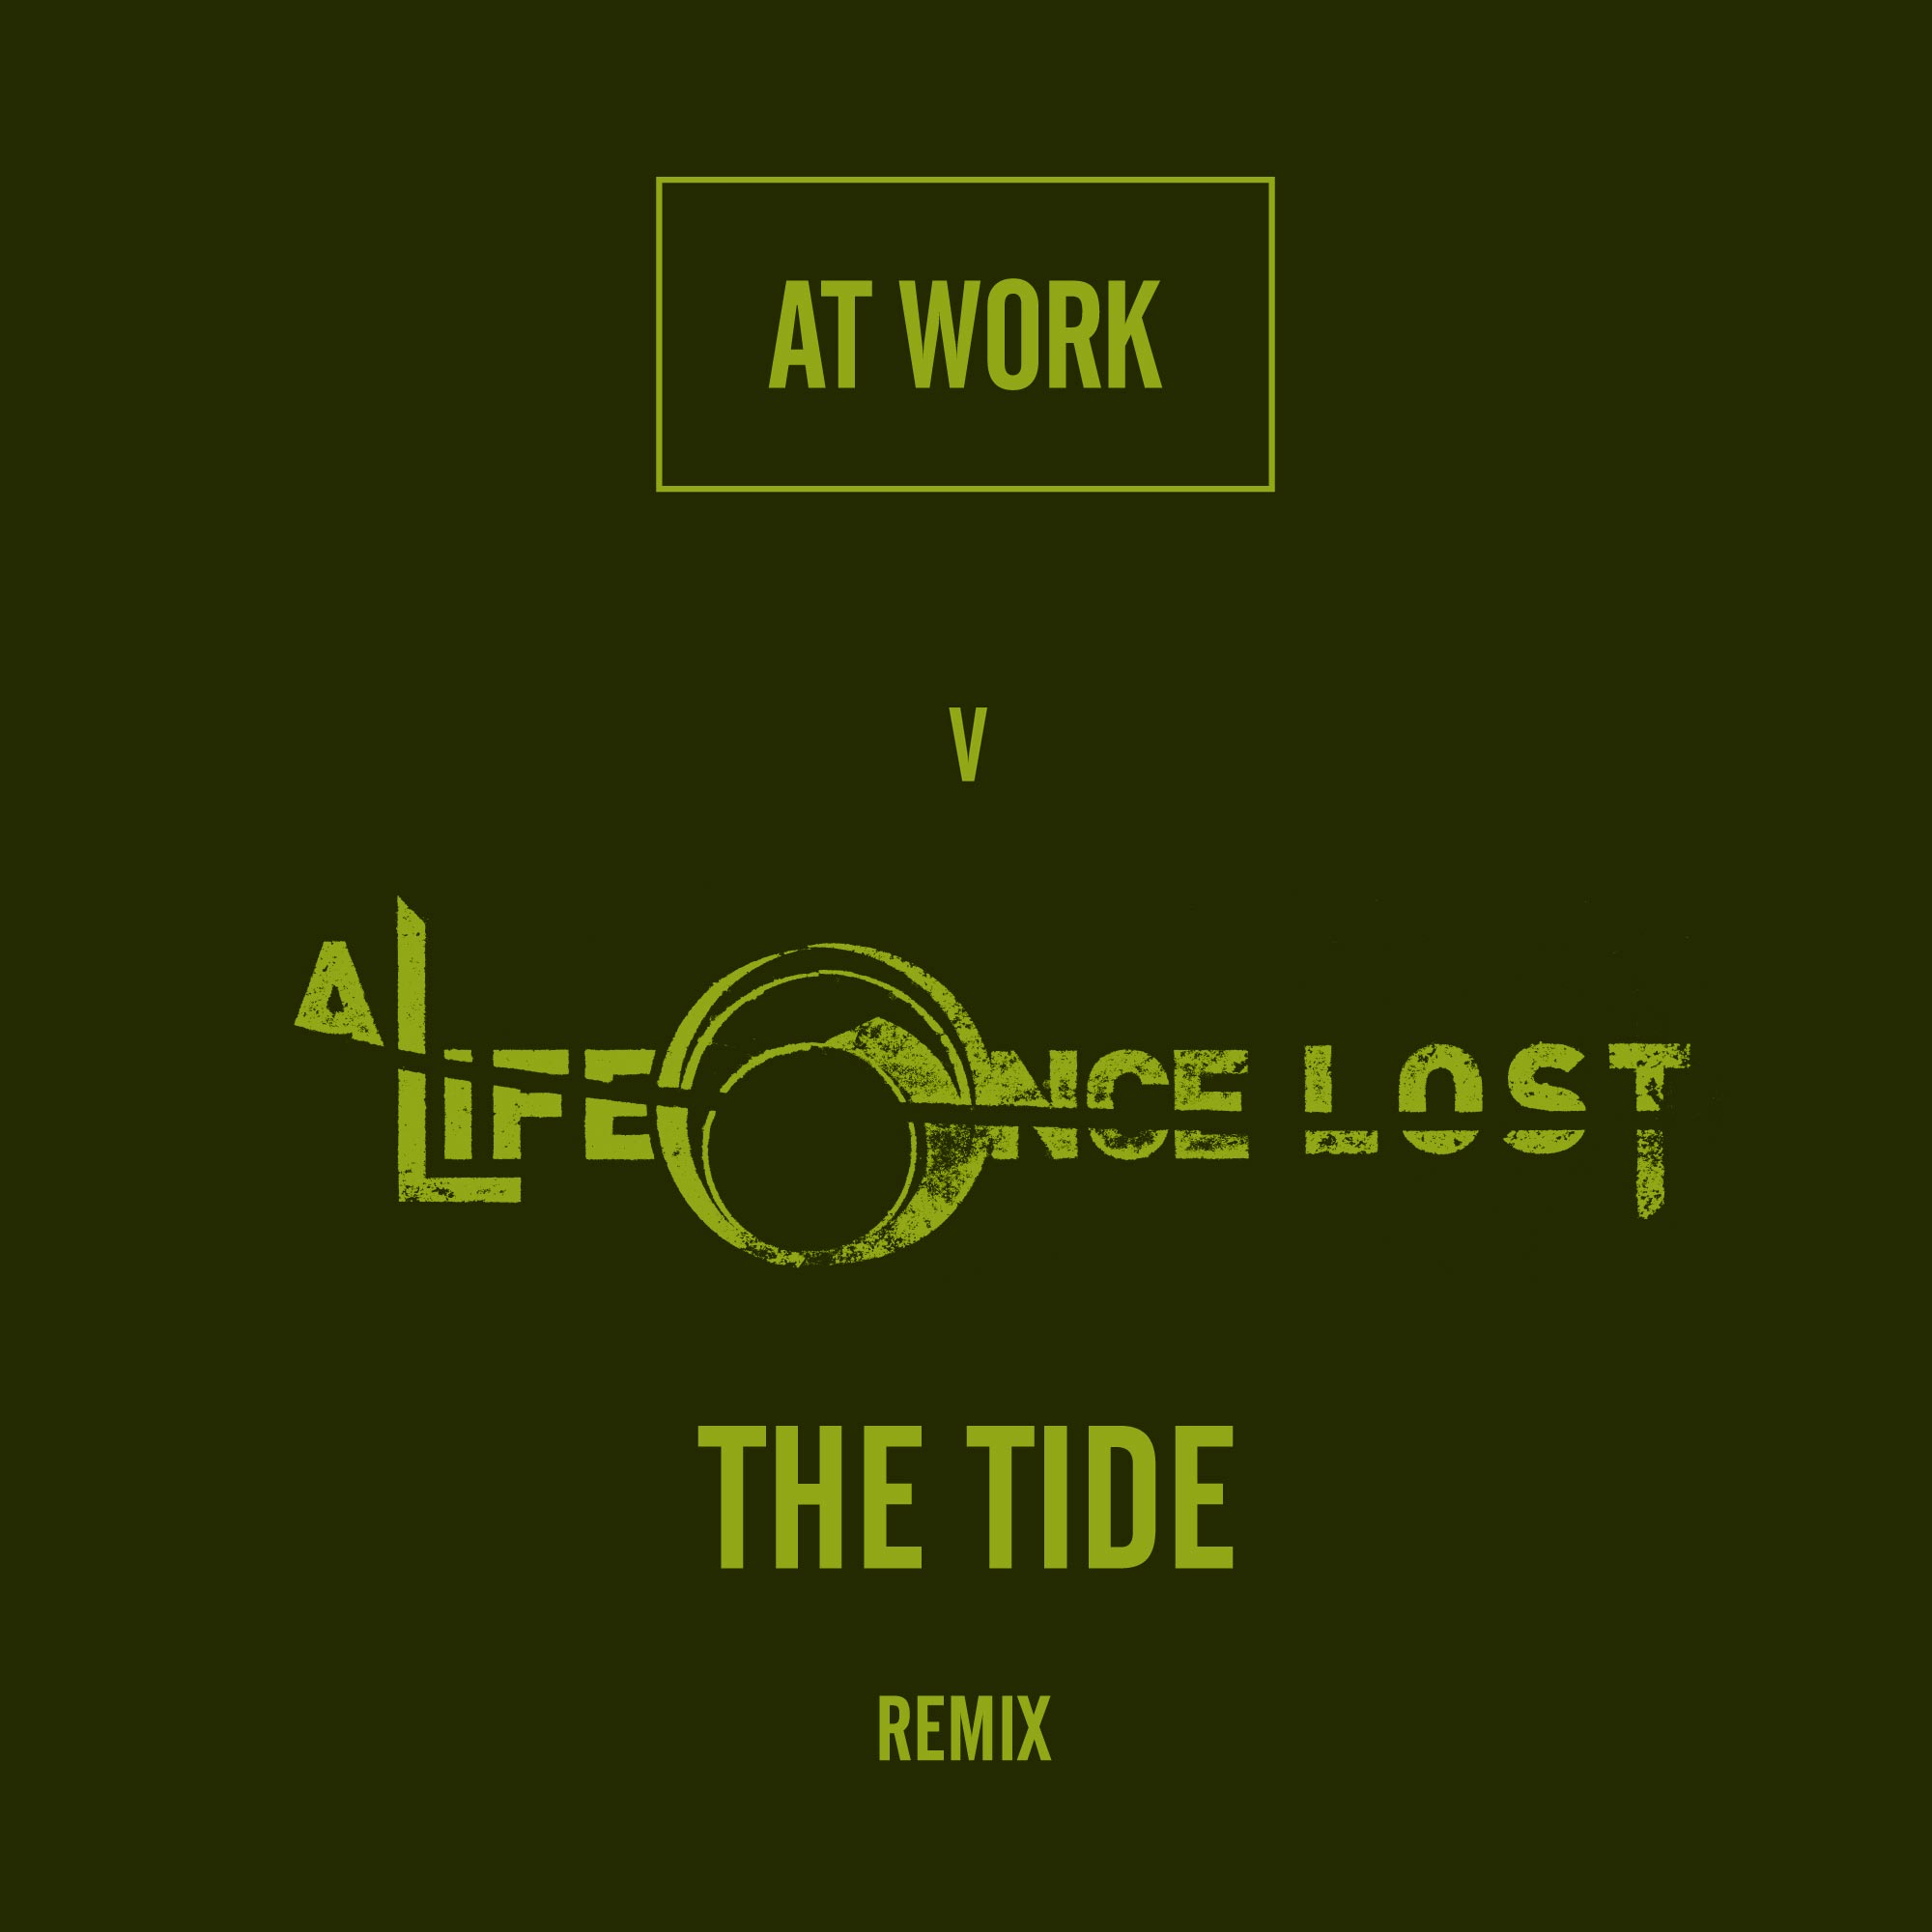 A Life Once Lost V At Work – The Tide - The At Work Remixes